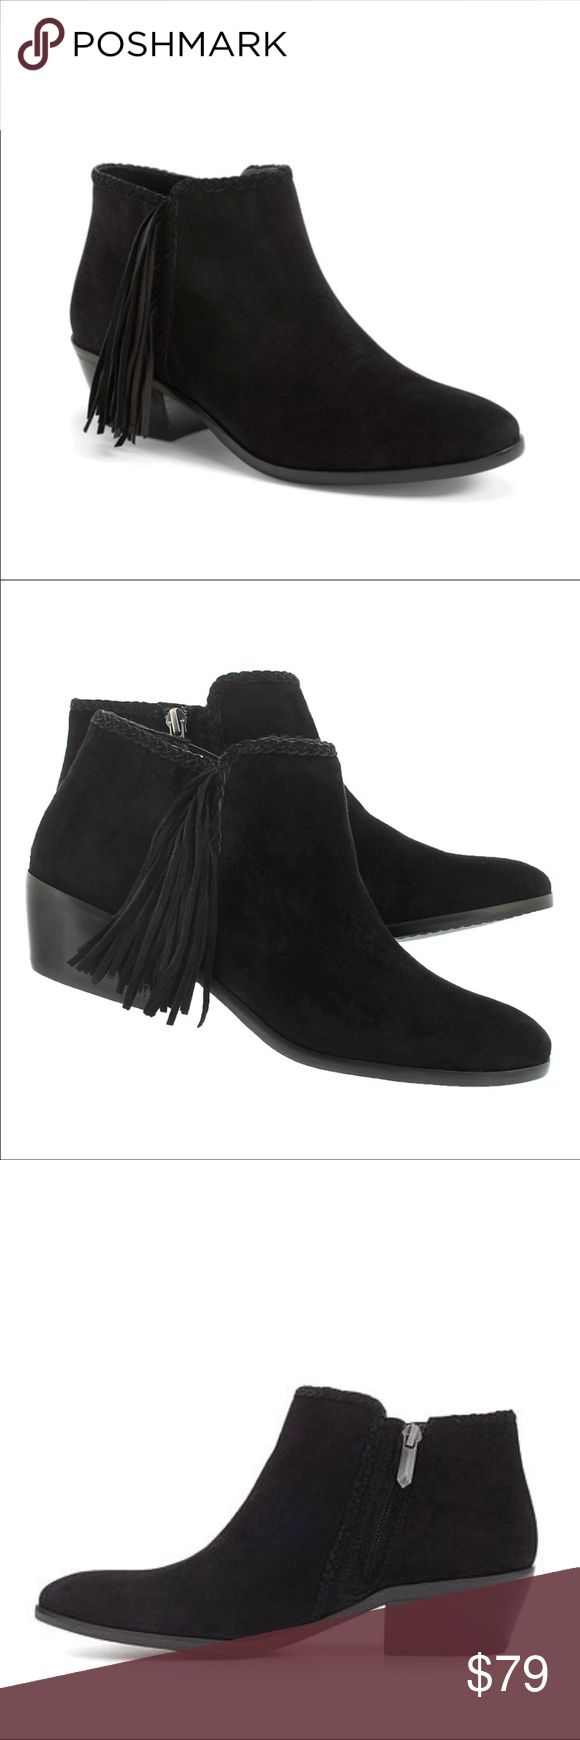 "🎉Host Pick🎉Sam Edelman Paige Fringe Ankle Bootie Sam Edelman ""Paige"" Leather Suede Booties Boots with Fringe Size 7.5. Black. Retail price is $170. Still sold on HSN.  Beautiful braiding and fun fringe combine to give a Bohemian update to the basic boot silhouette. Pair them with cropped denim or dresses for an edgy style you'll reach for again and again. Great pre owned condition. No trades please 💕 Sam Edelman Shoes Ankle Boots & Booties"